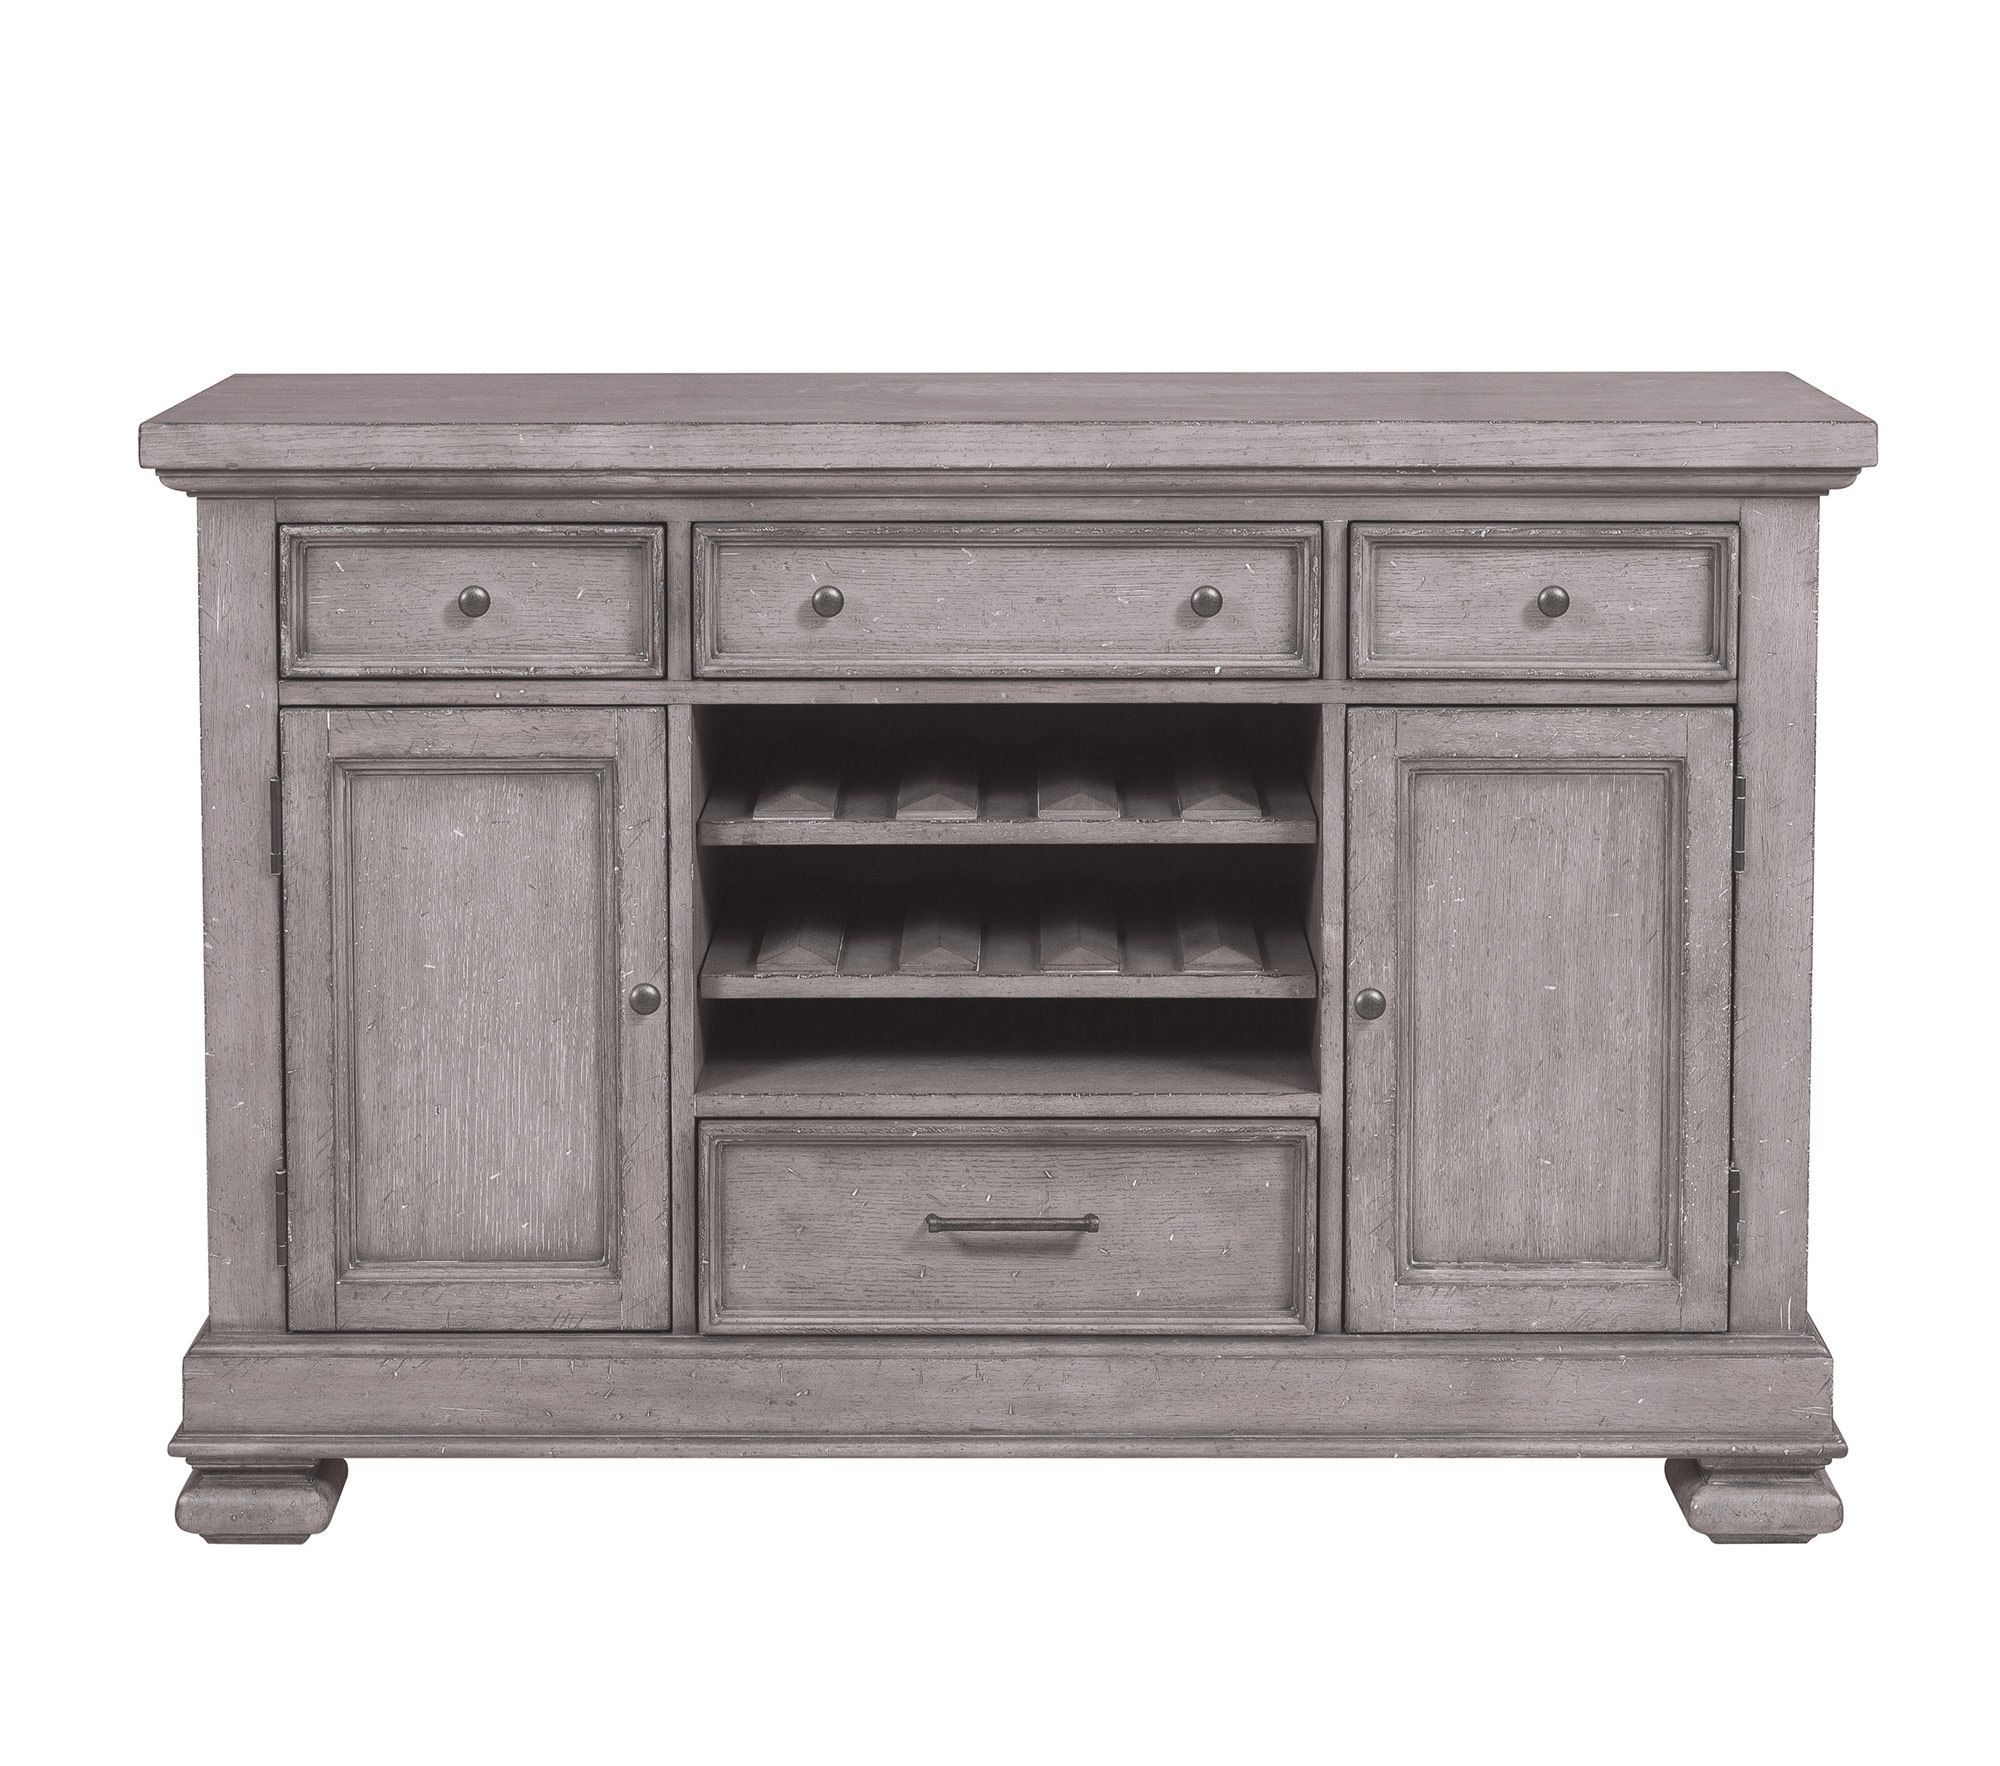 Samuel Lawrence Furniture Throughout Most Recently Released Tilman Sideboards (Gallery 9 of 20)